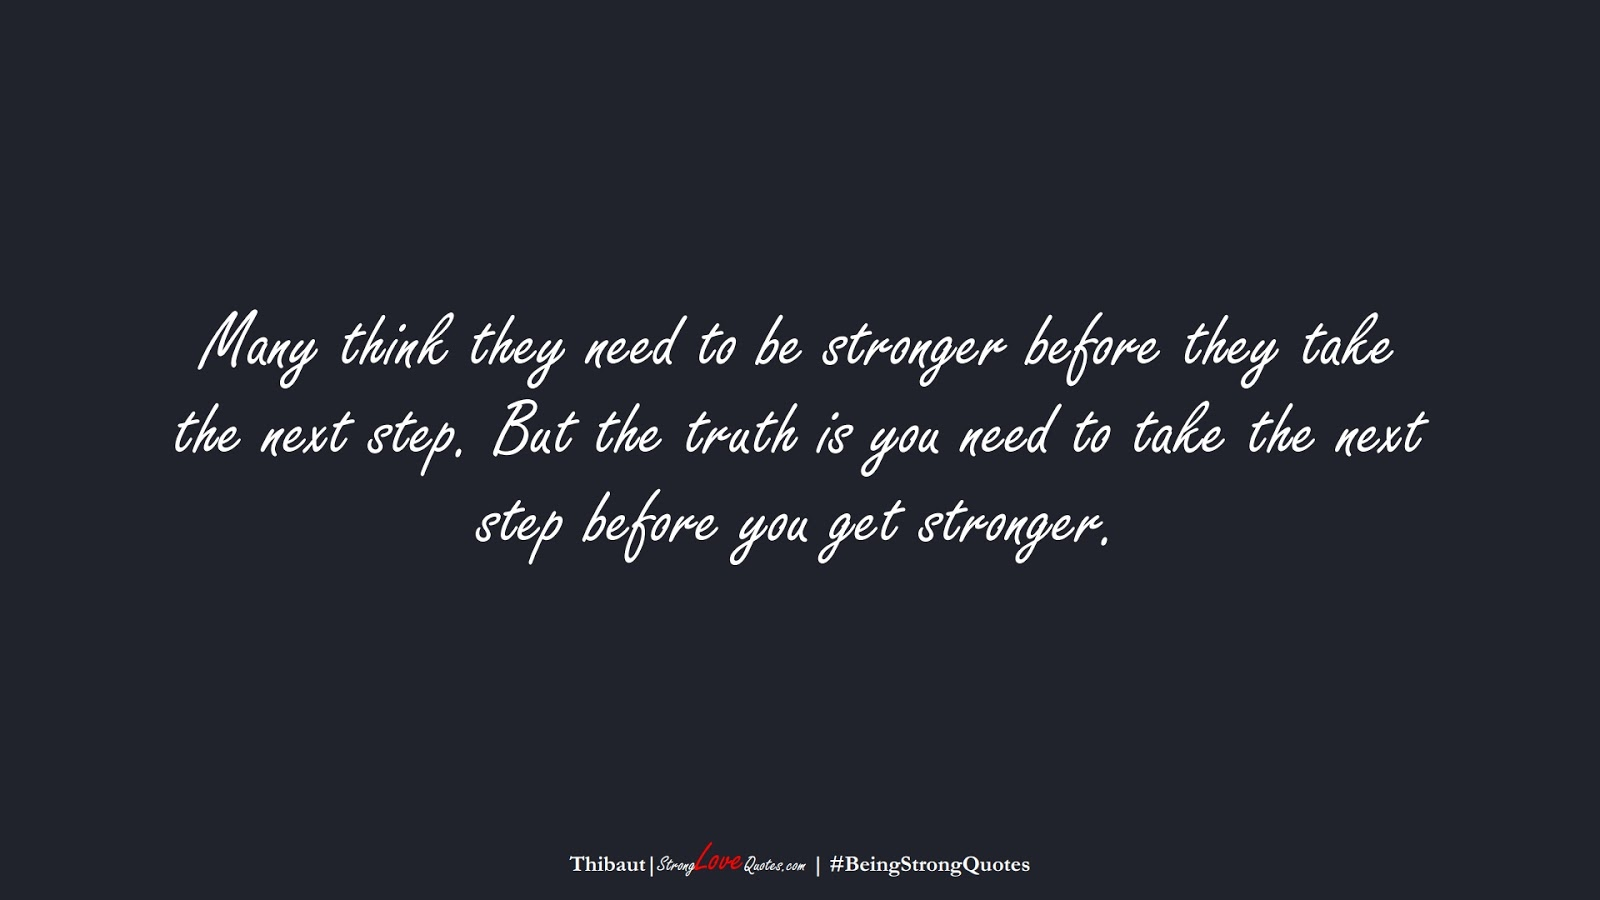 Many think they need to be stronger before they take the next step. But the truth is you need to take the next step before you get stronger. (Thibaut);  #BeingStrongQuotes